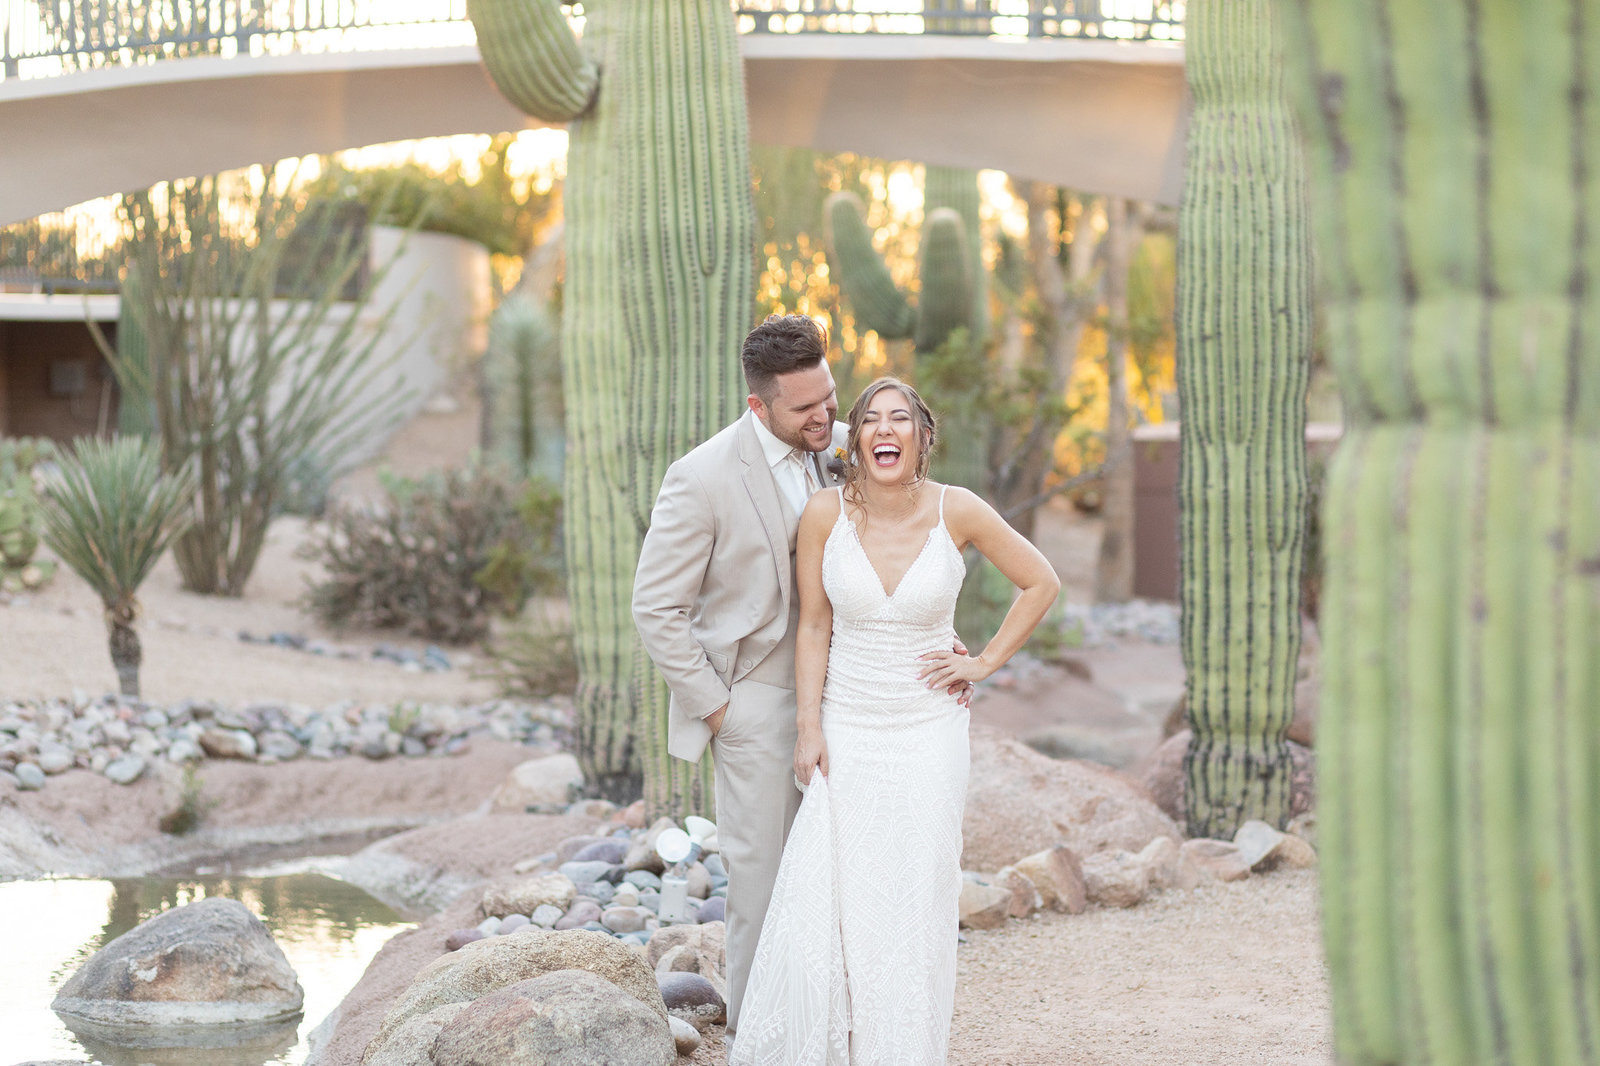 Jared and Sharaya Maples giggling by the cacti